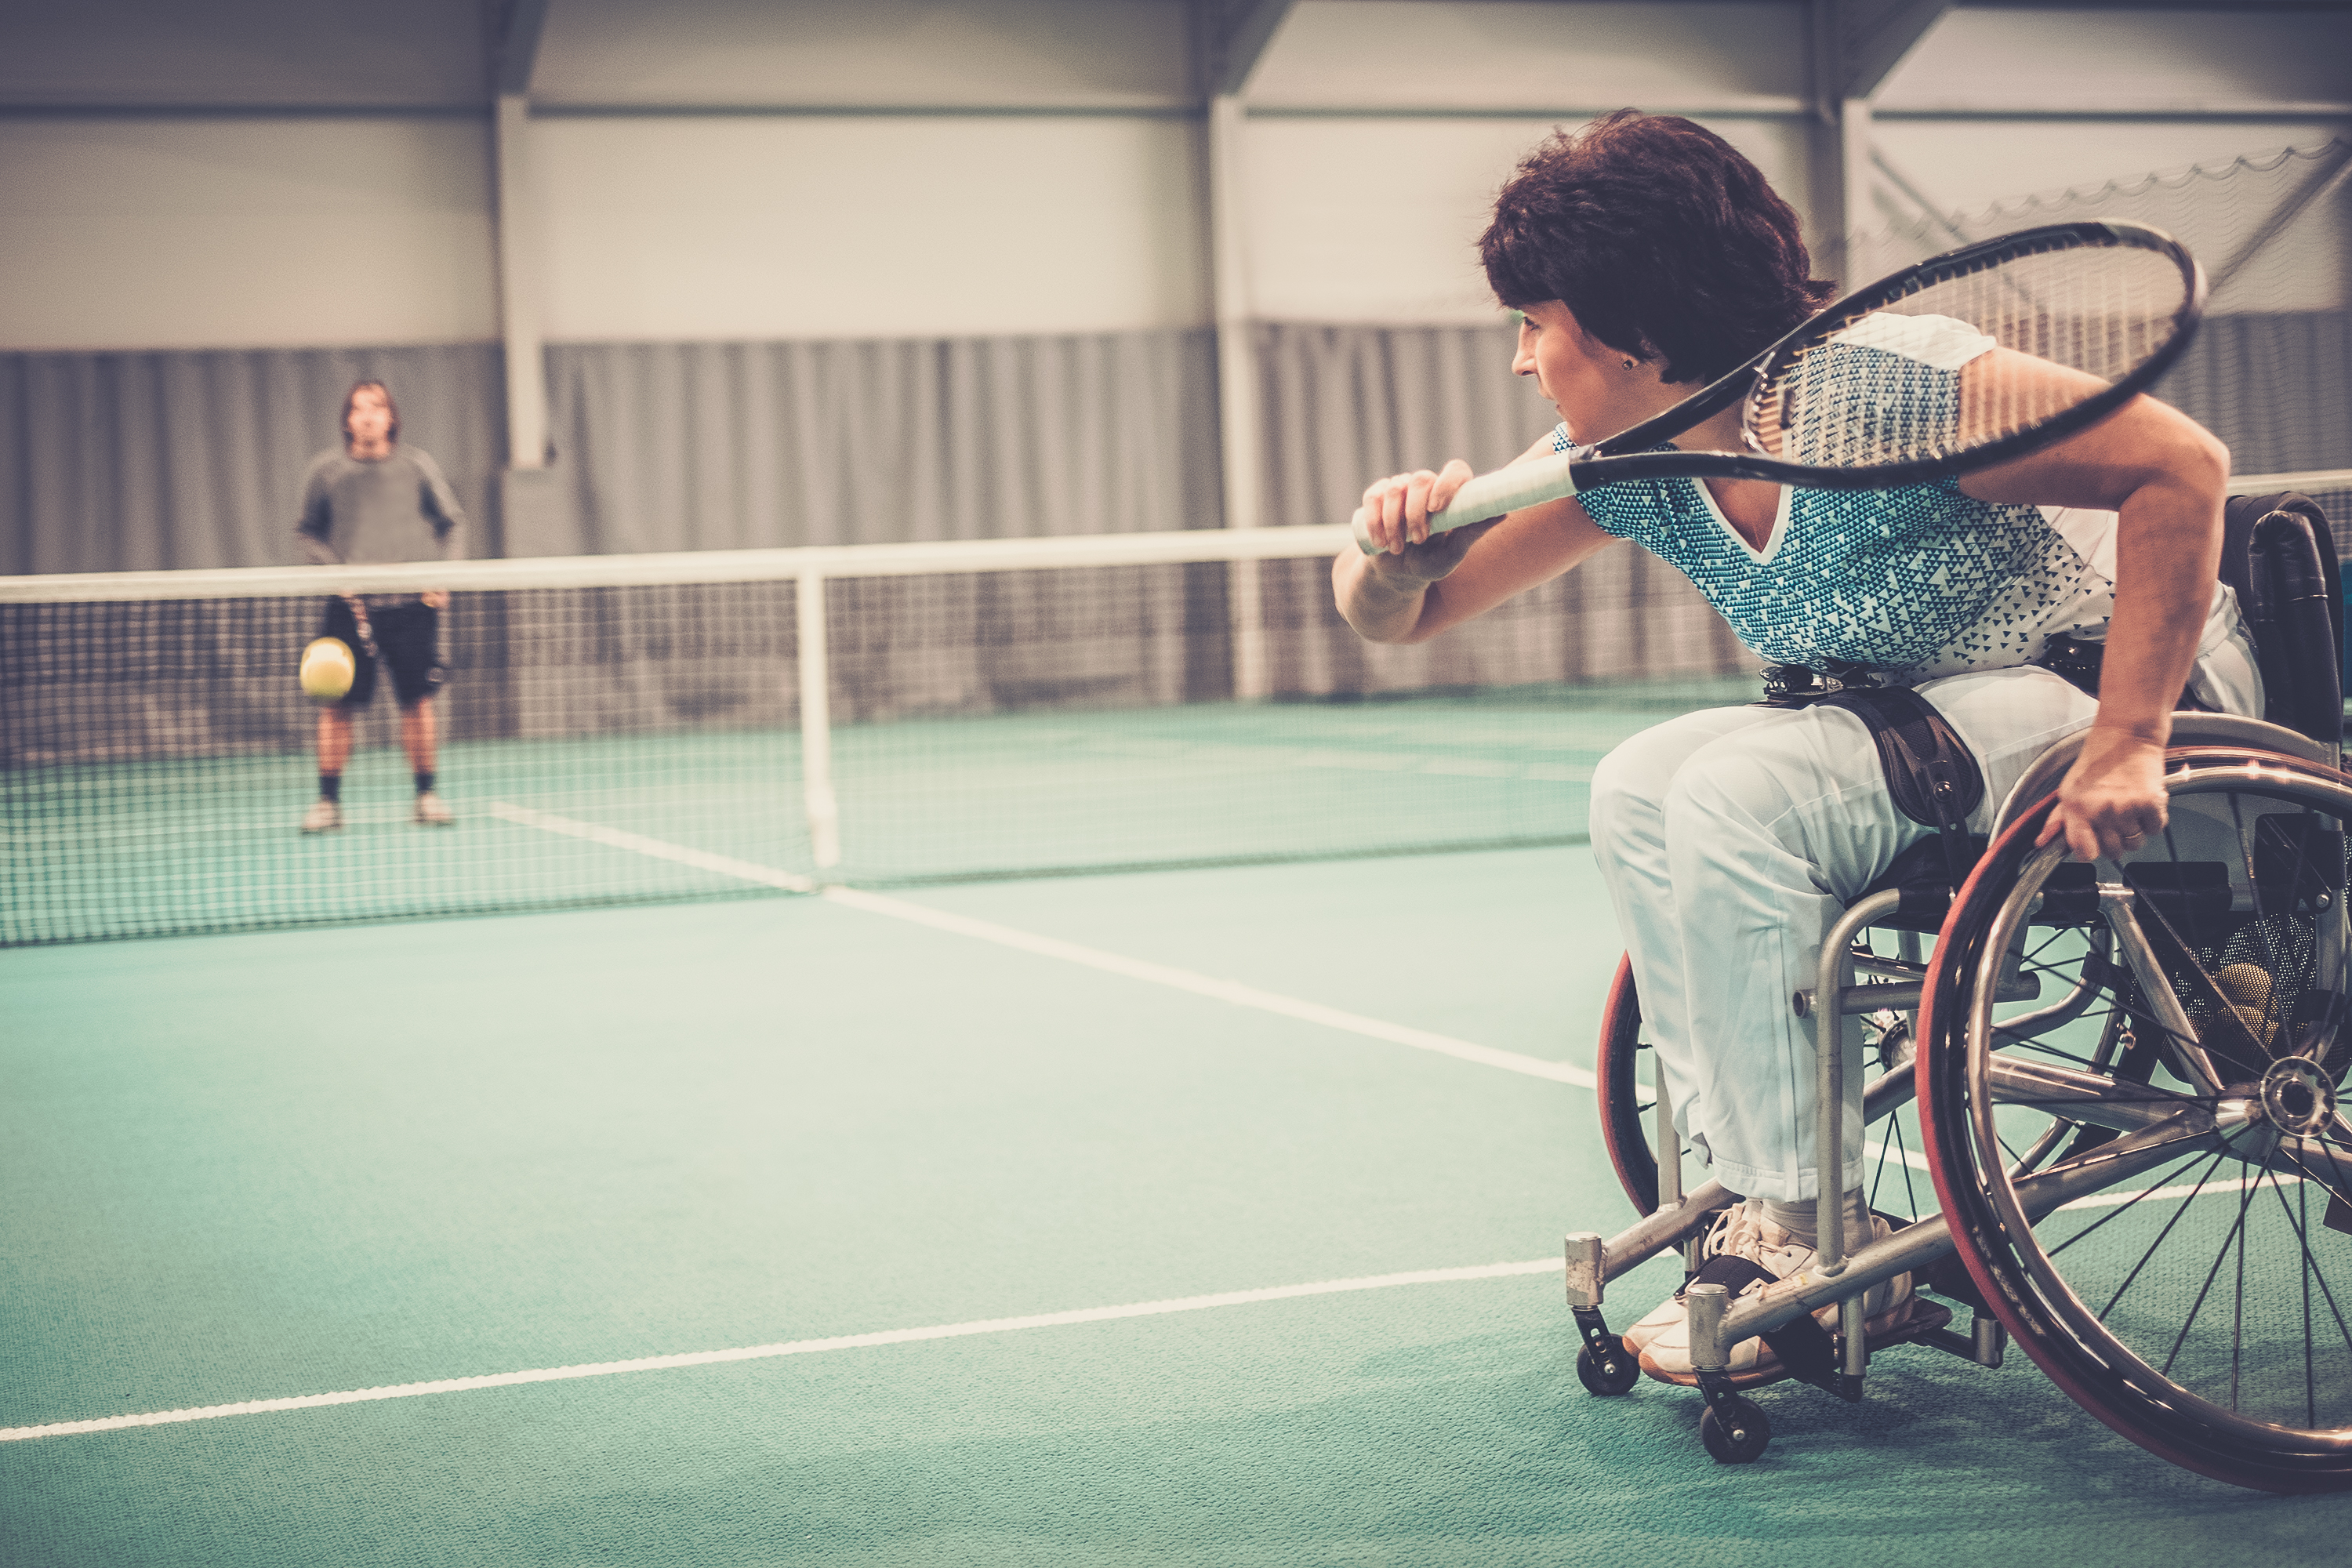 Lady in wheelchair playing tennis